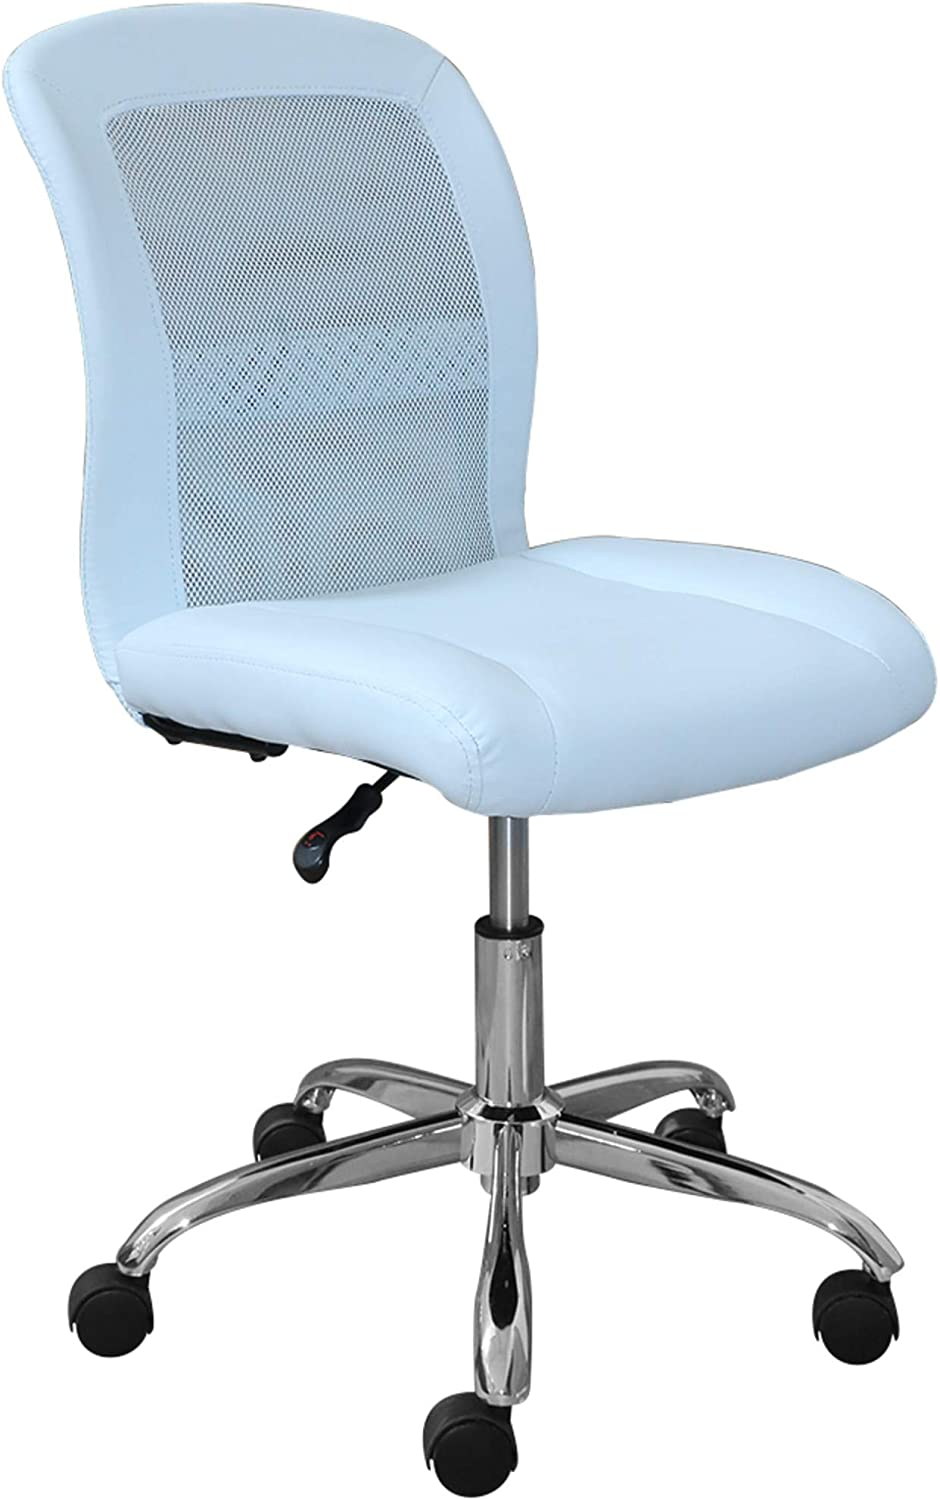 Serta Essentials Ergonomic Armless Low-Back Computer Swivel Task Chair, Faux Leather and Mesh, Blue